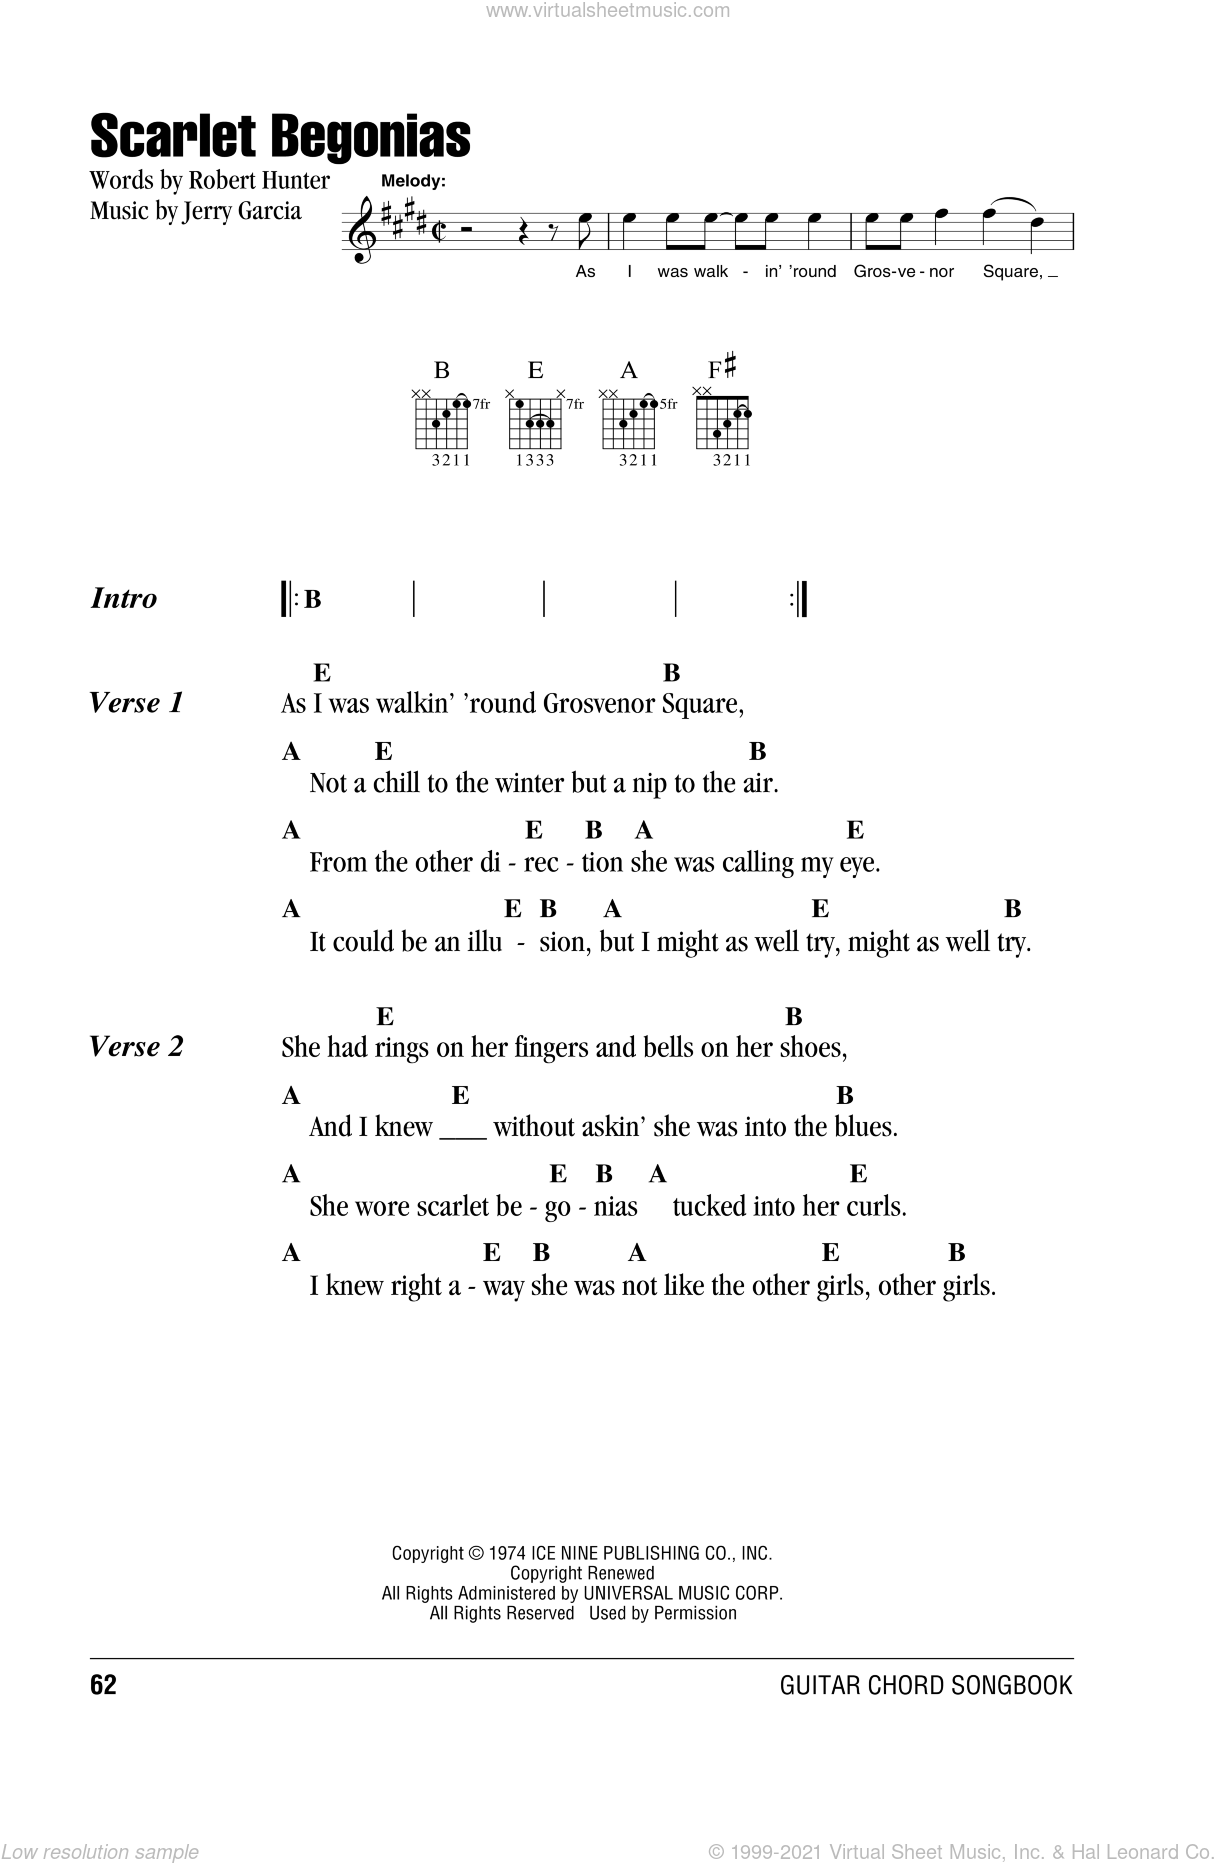 Dead Scarlet Begonias Sheet Music For Guitar Chords Pdf